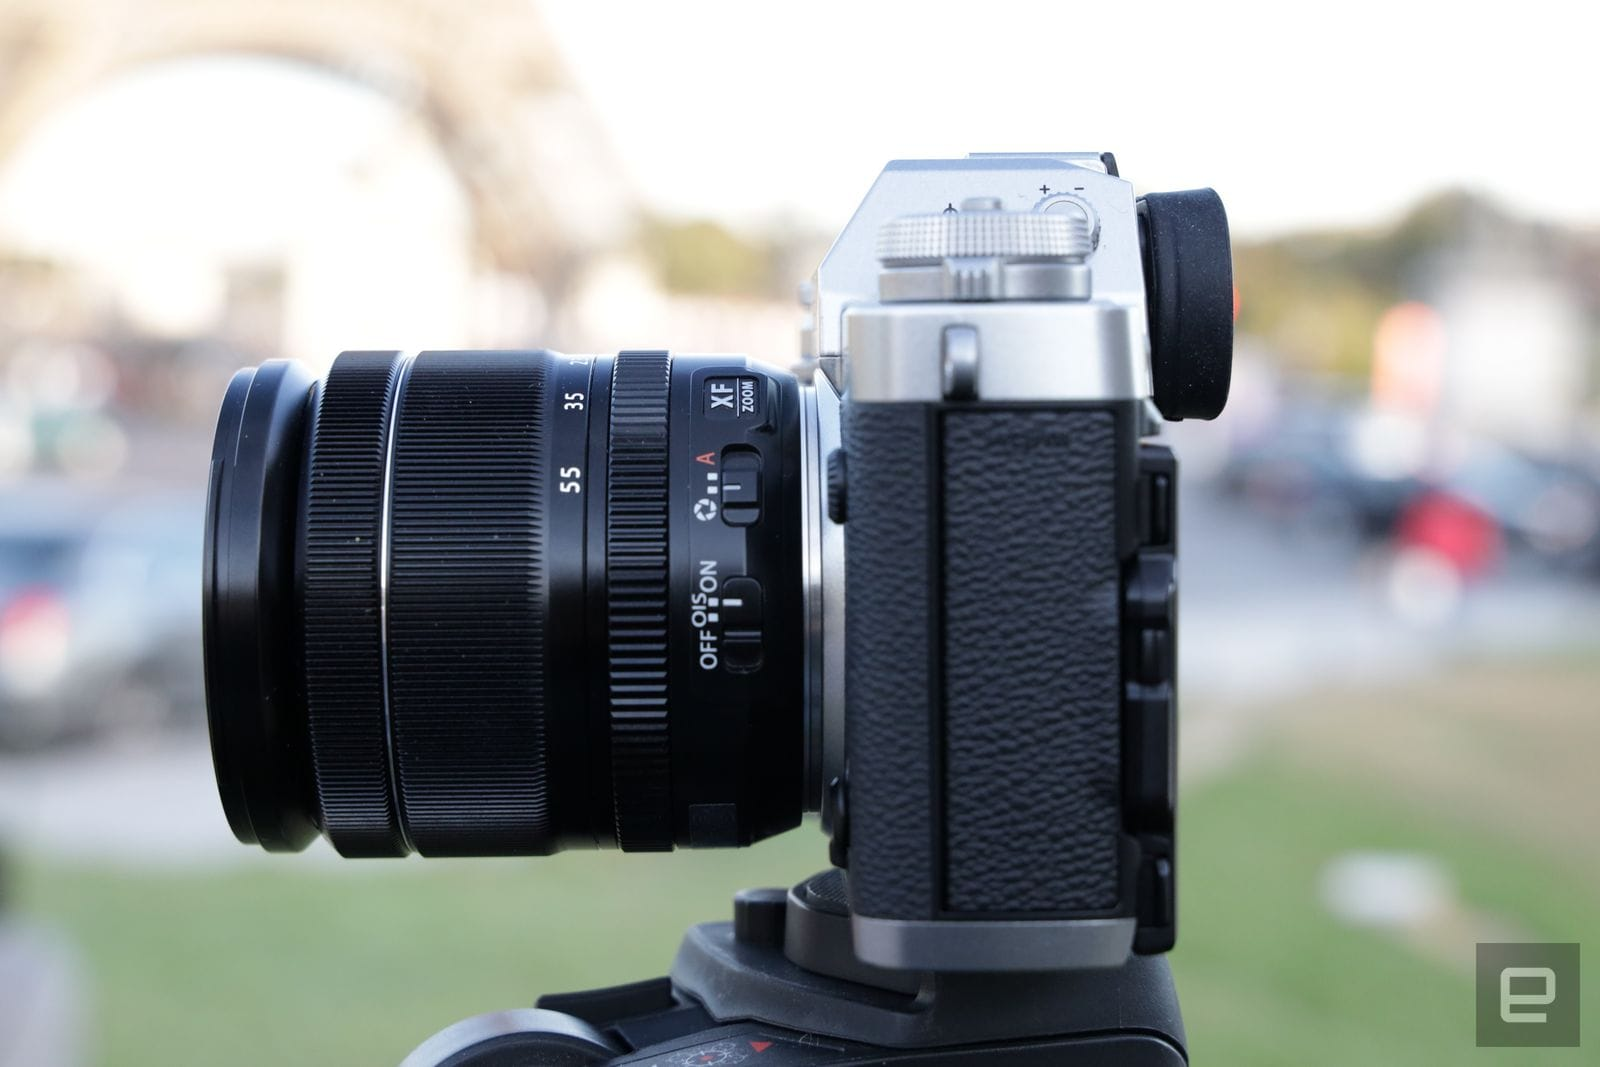 Fuijfilm X-T3 mirrorless camera review